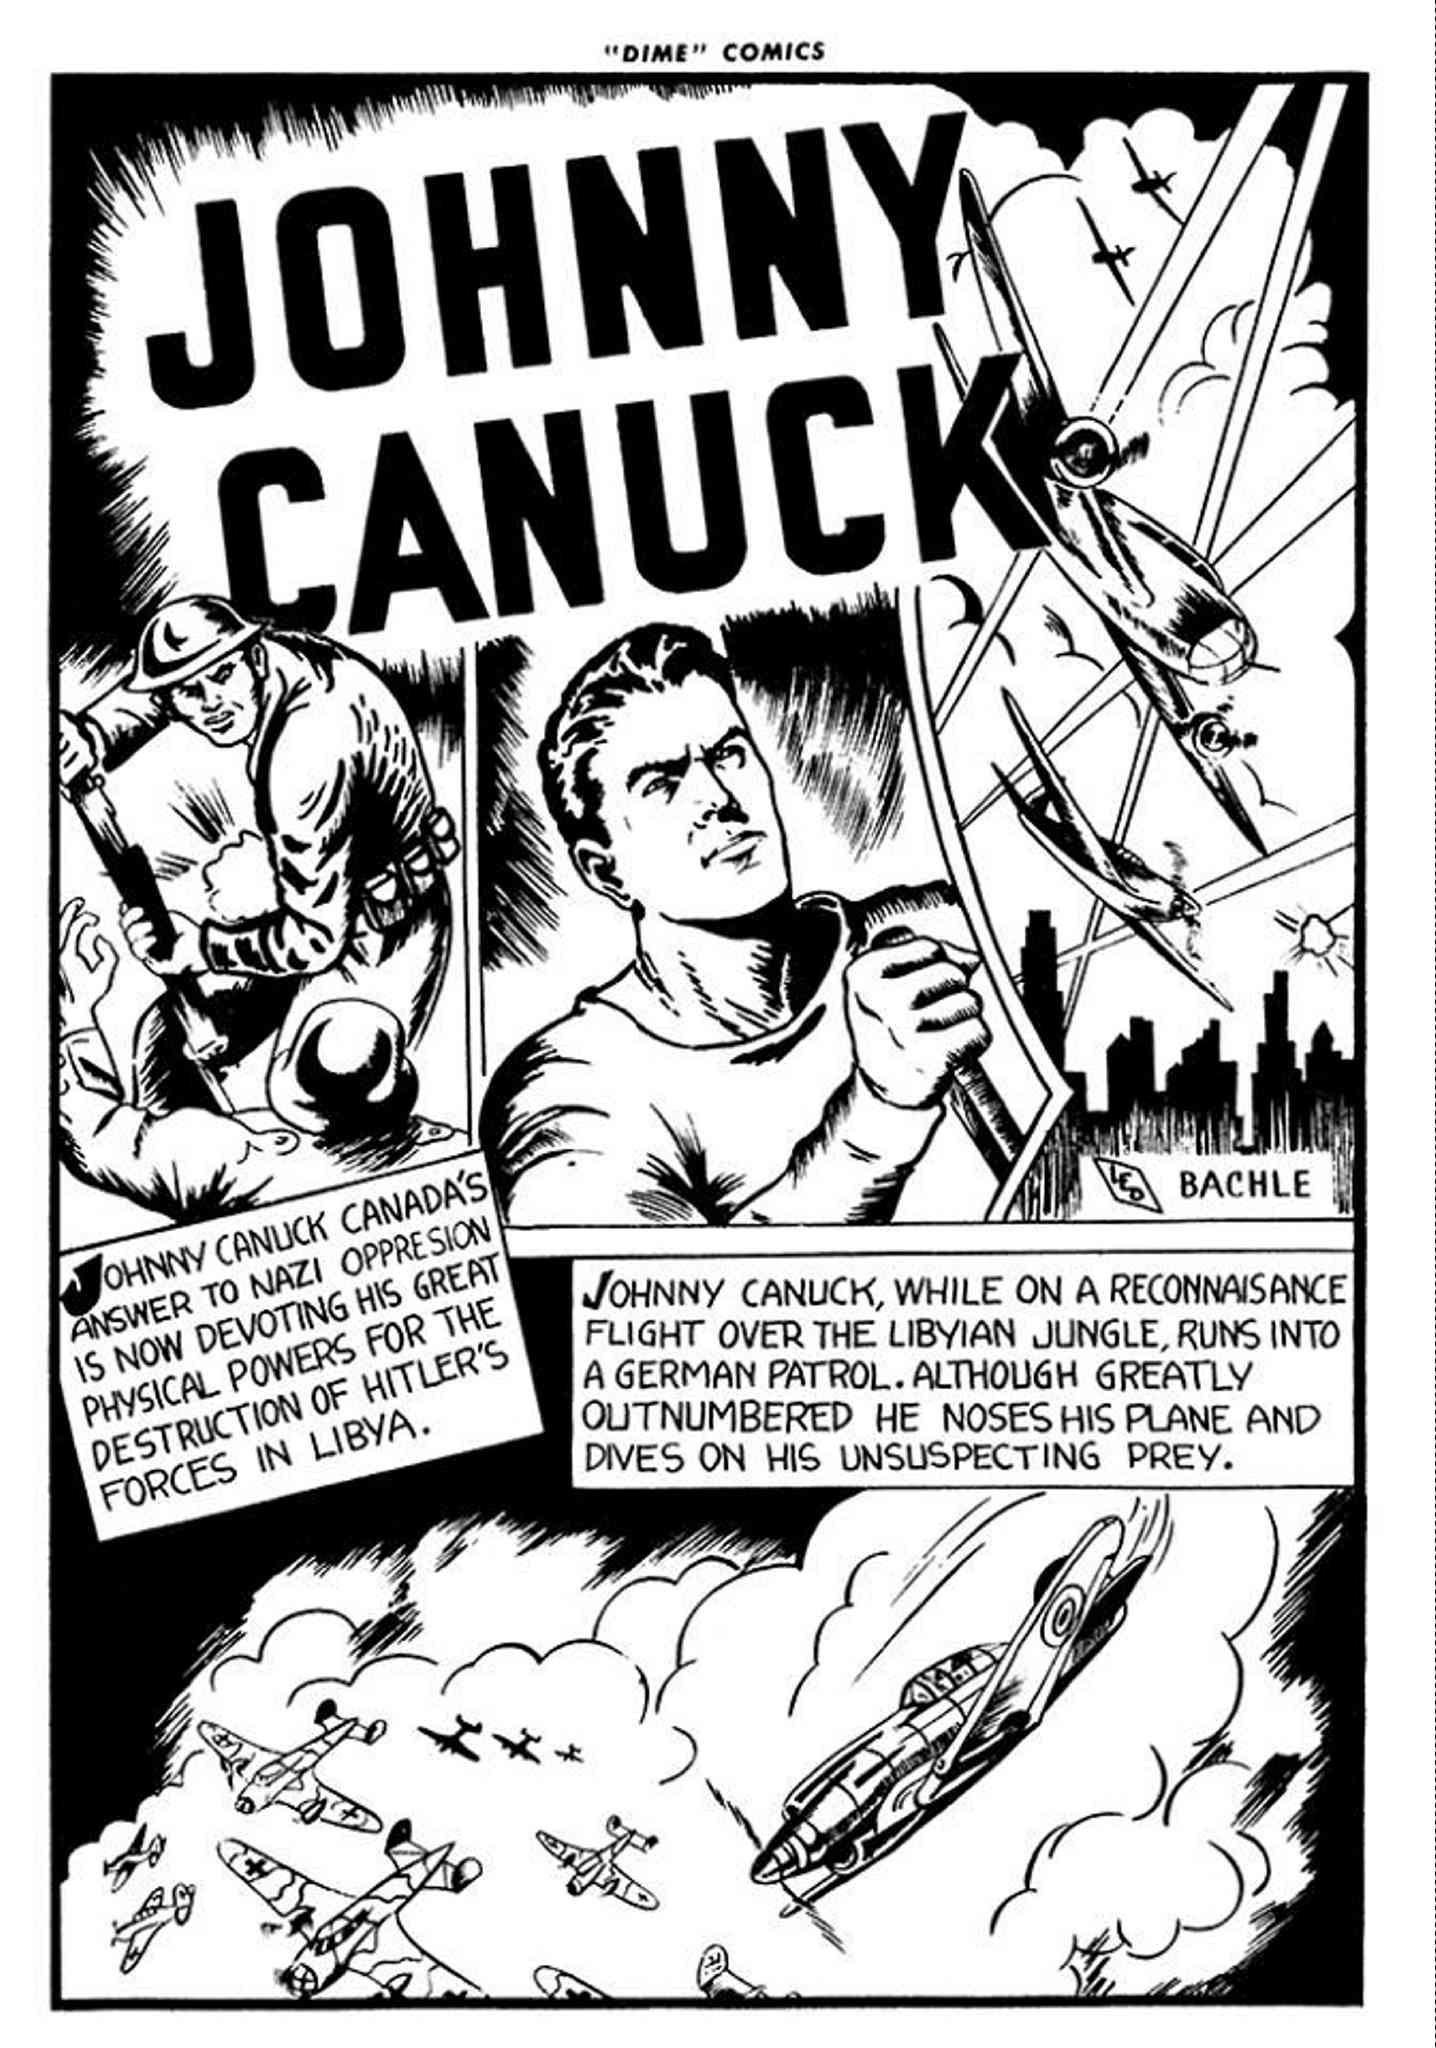 The splash page of Johnny Canuck's first adventure.